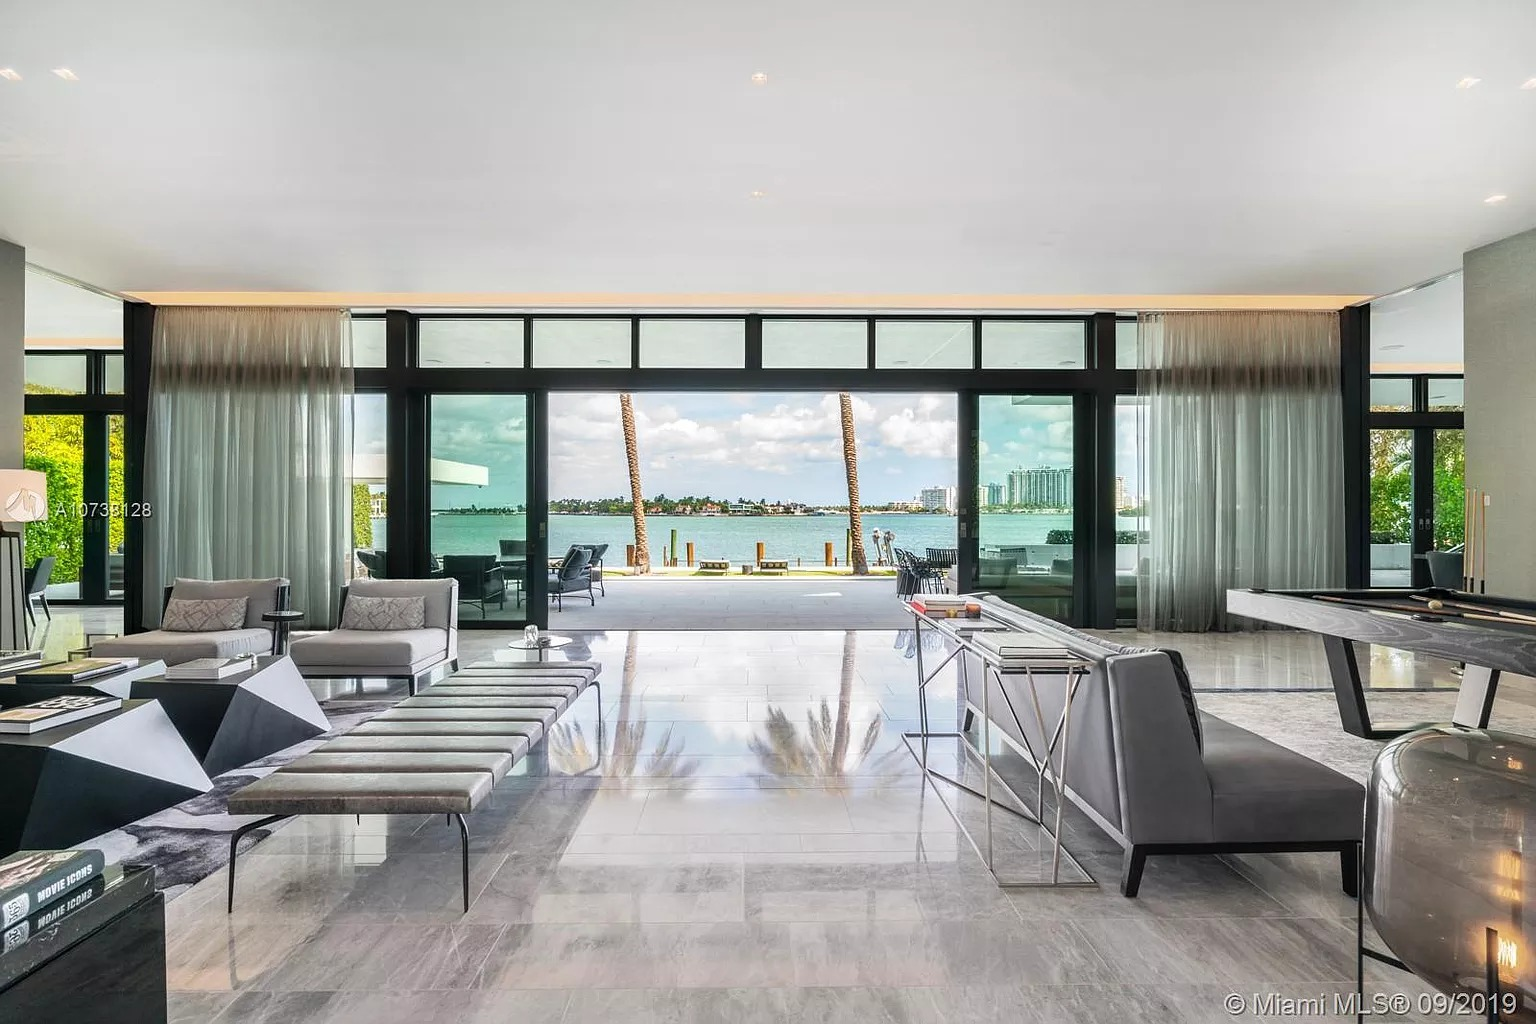 101 N Hibiscus Dr, Miami Beach, FL 33139 - $25,900,000 home for sale, house images, photos and pics gallery